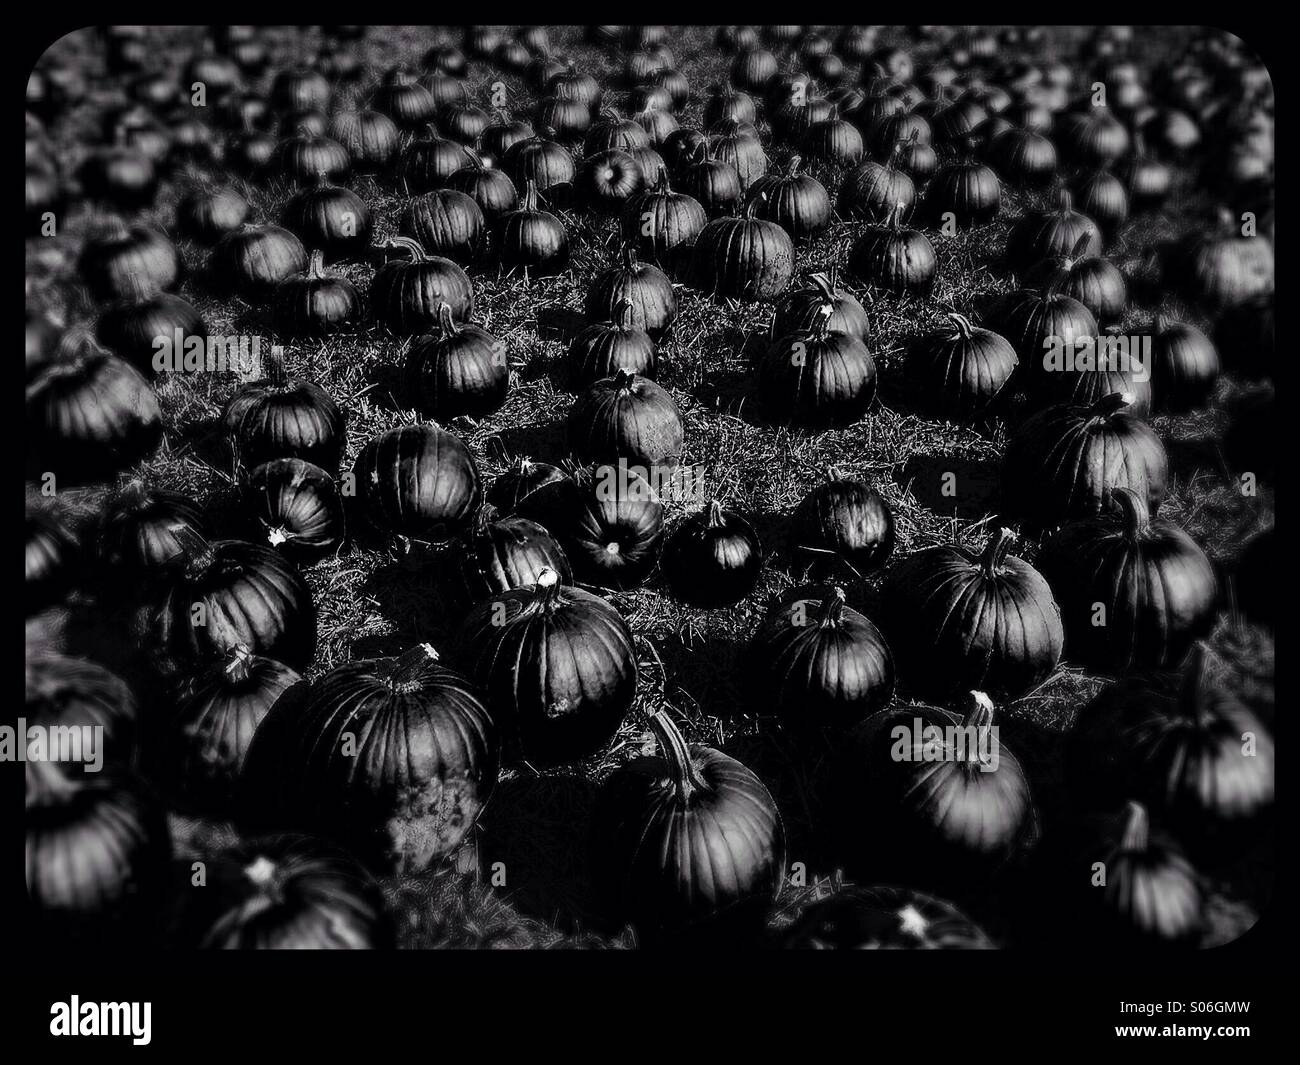 A field of pumpkins, in black and white. - Stock Image